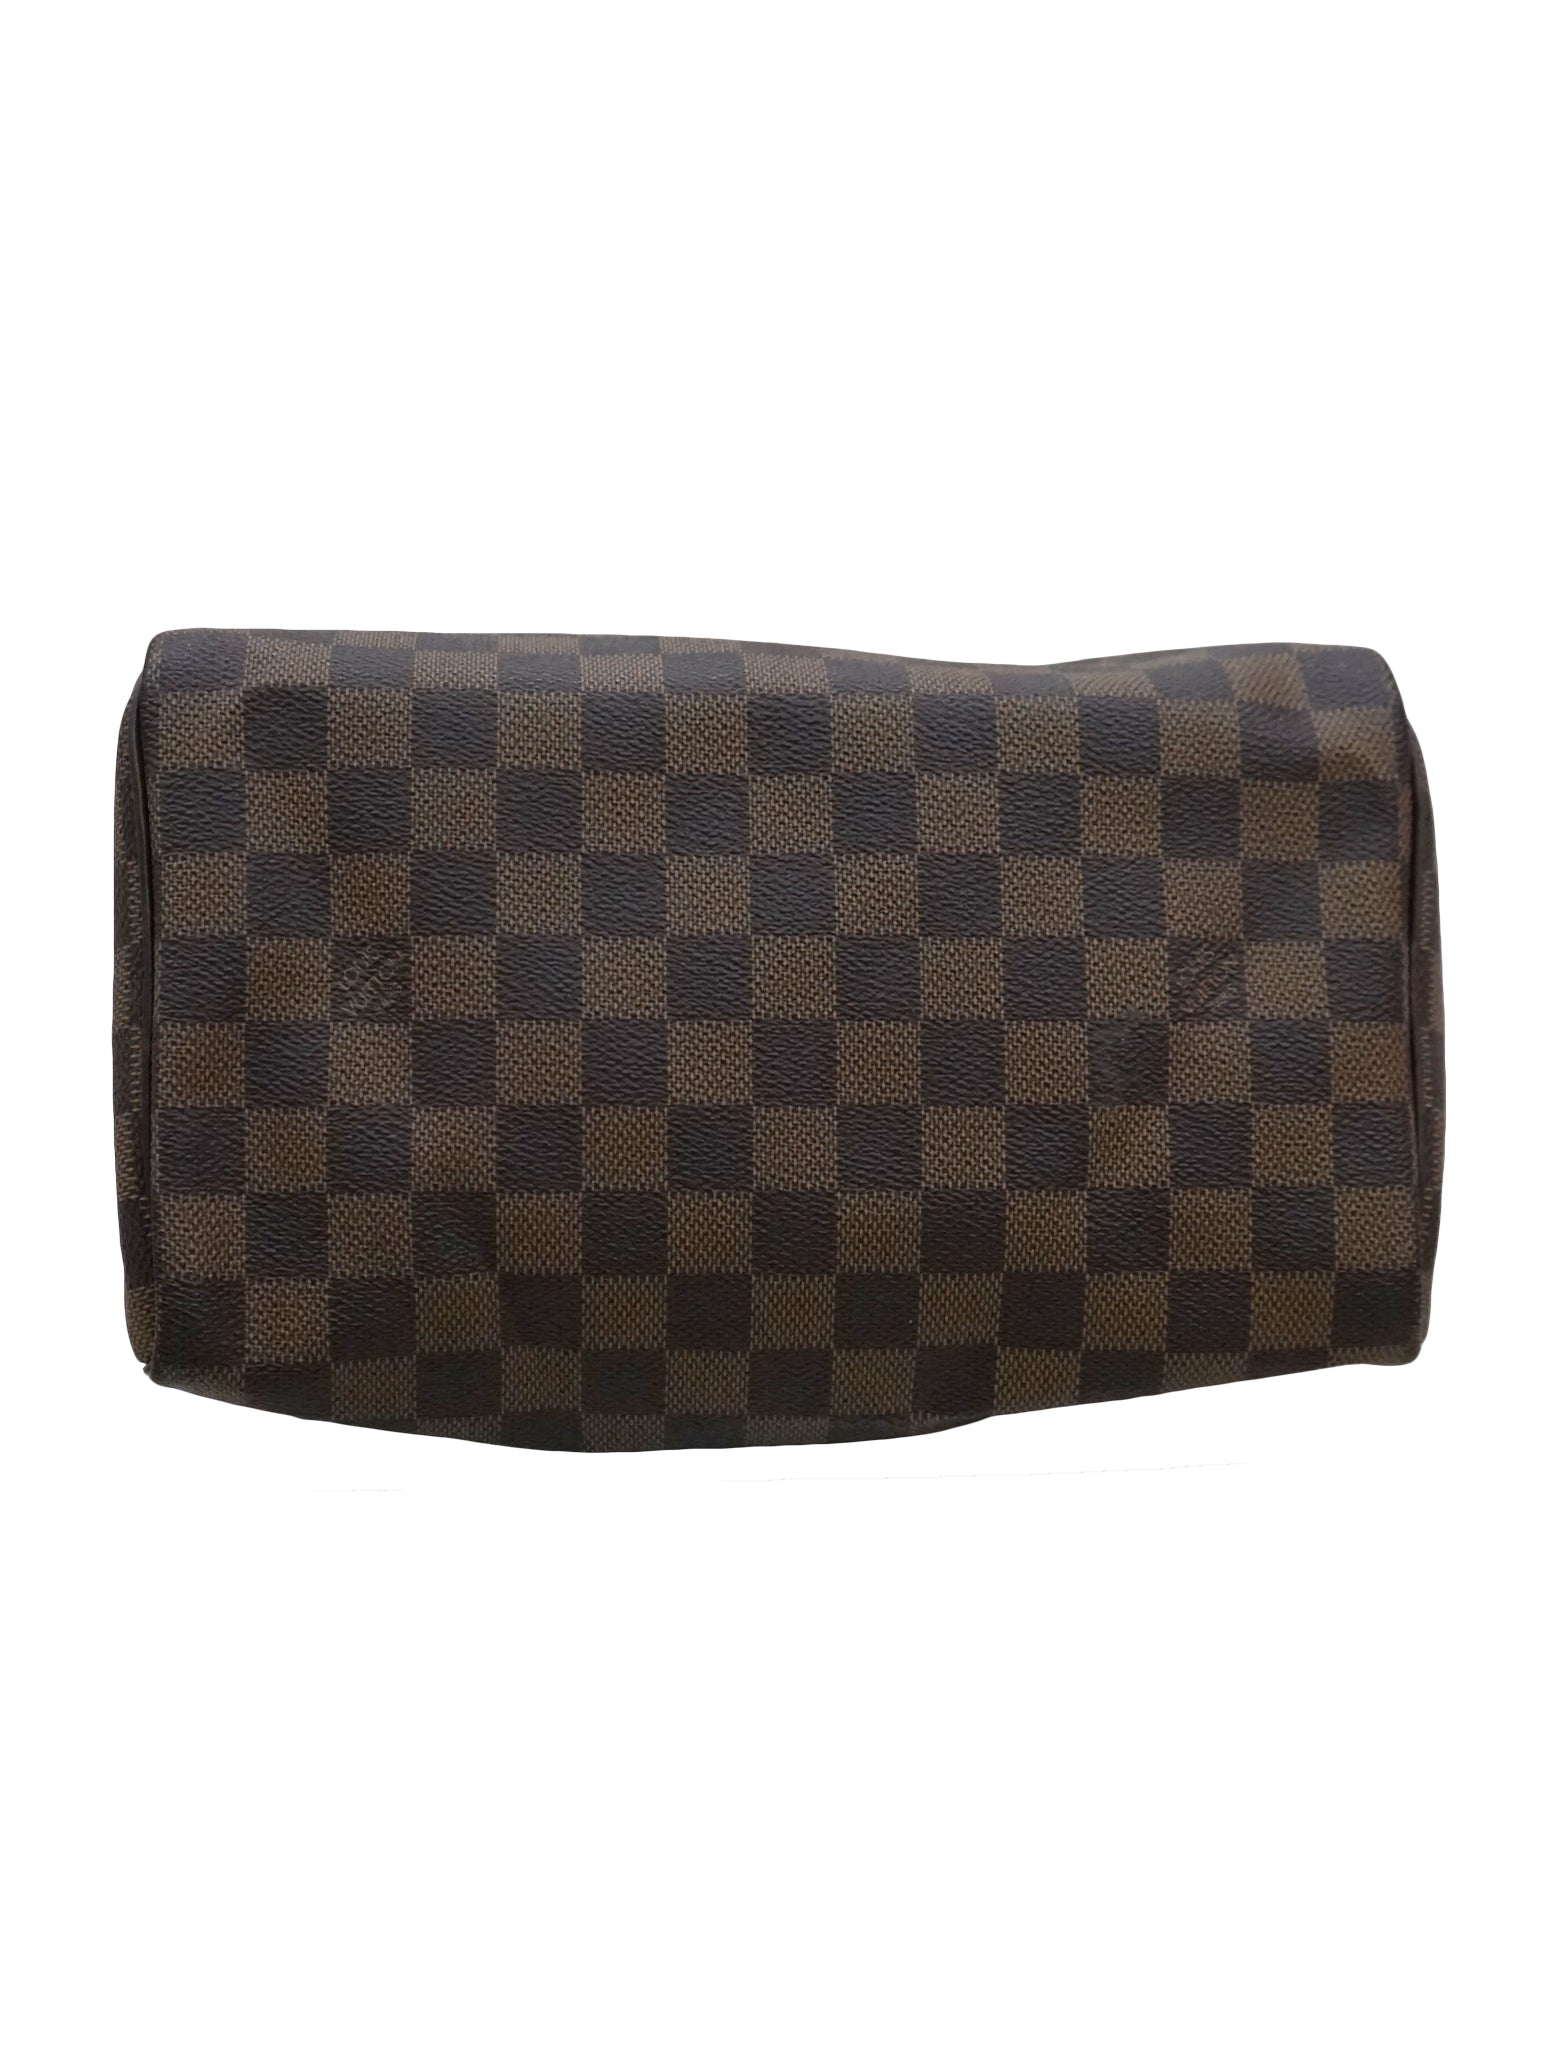 DAMIER EBENE CANVAS SPEEDY 25 BAG